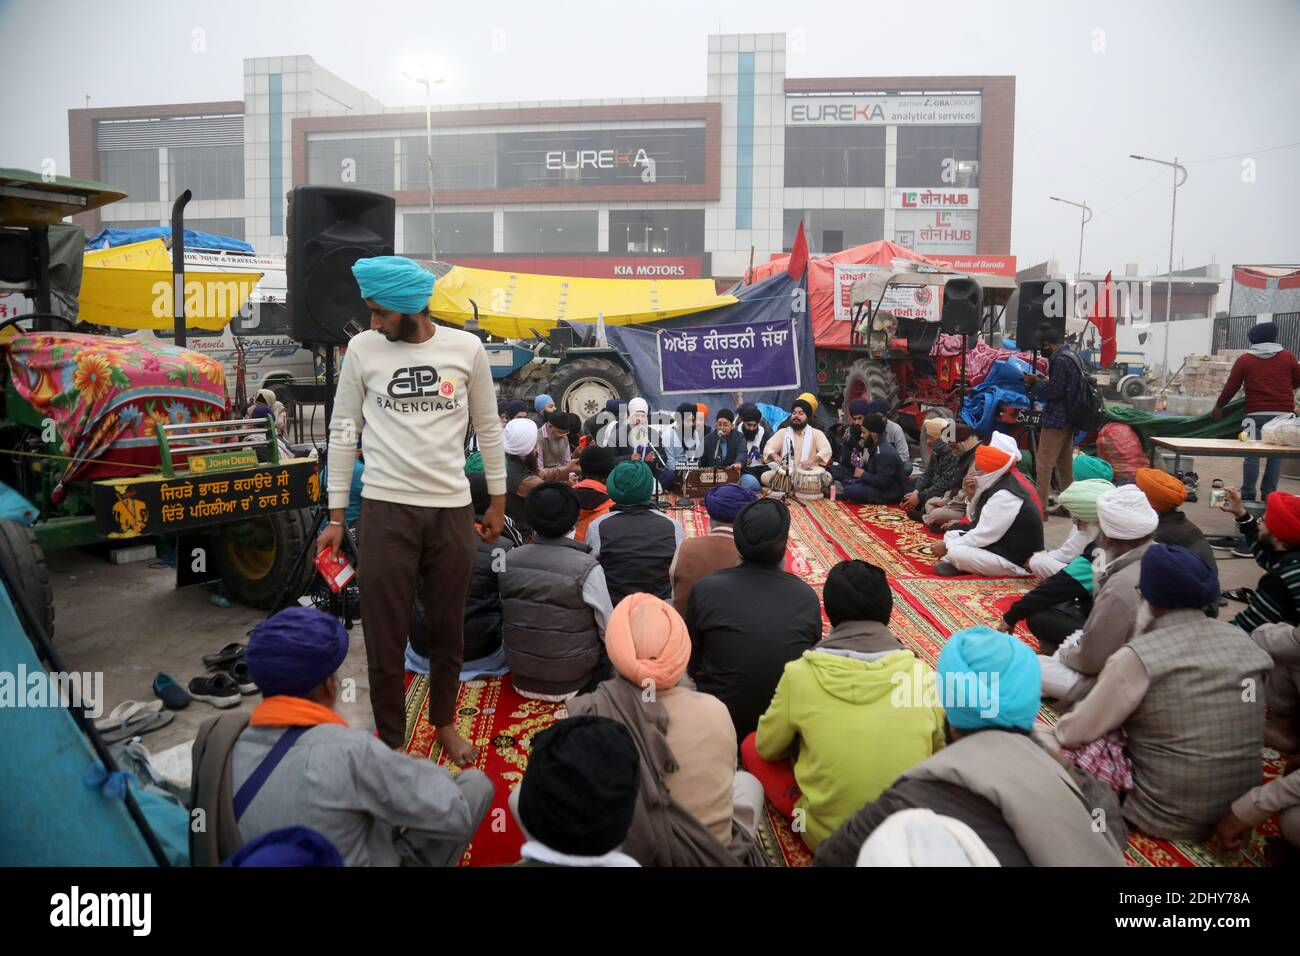 Protesters speaking in Punjabi Shabad Gurbani Kirtan (Holly words) to colleagues during the demonstration.Thousands of farmers from Punjab, Haryana and Uttar Pradesh blocked Singhu border (Delhi-Haryana Highway), Ghazipur border (Delhi-Meerut Highway), Tikri border and Gurugram Border agitating for the 17 days. Against the Centre's new farm reform laws.  Indian Union Minister of Agriculture and Farmers Welfare, Narendra Singh Tomar appeals to farmers to end their protest and work with the government. Stock Photo